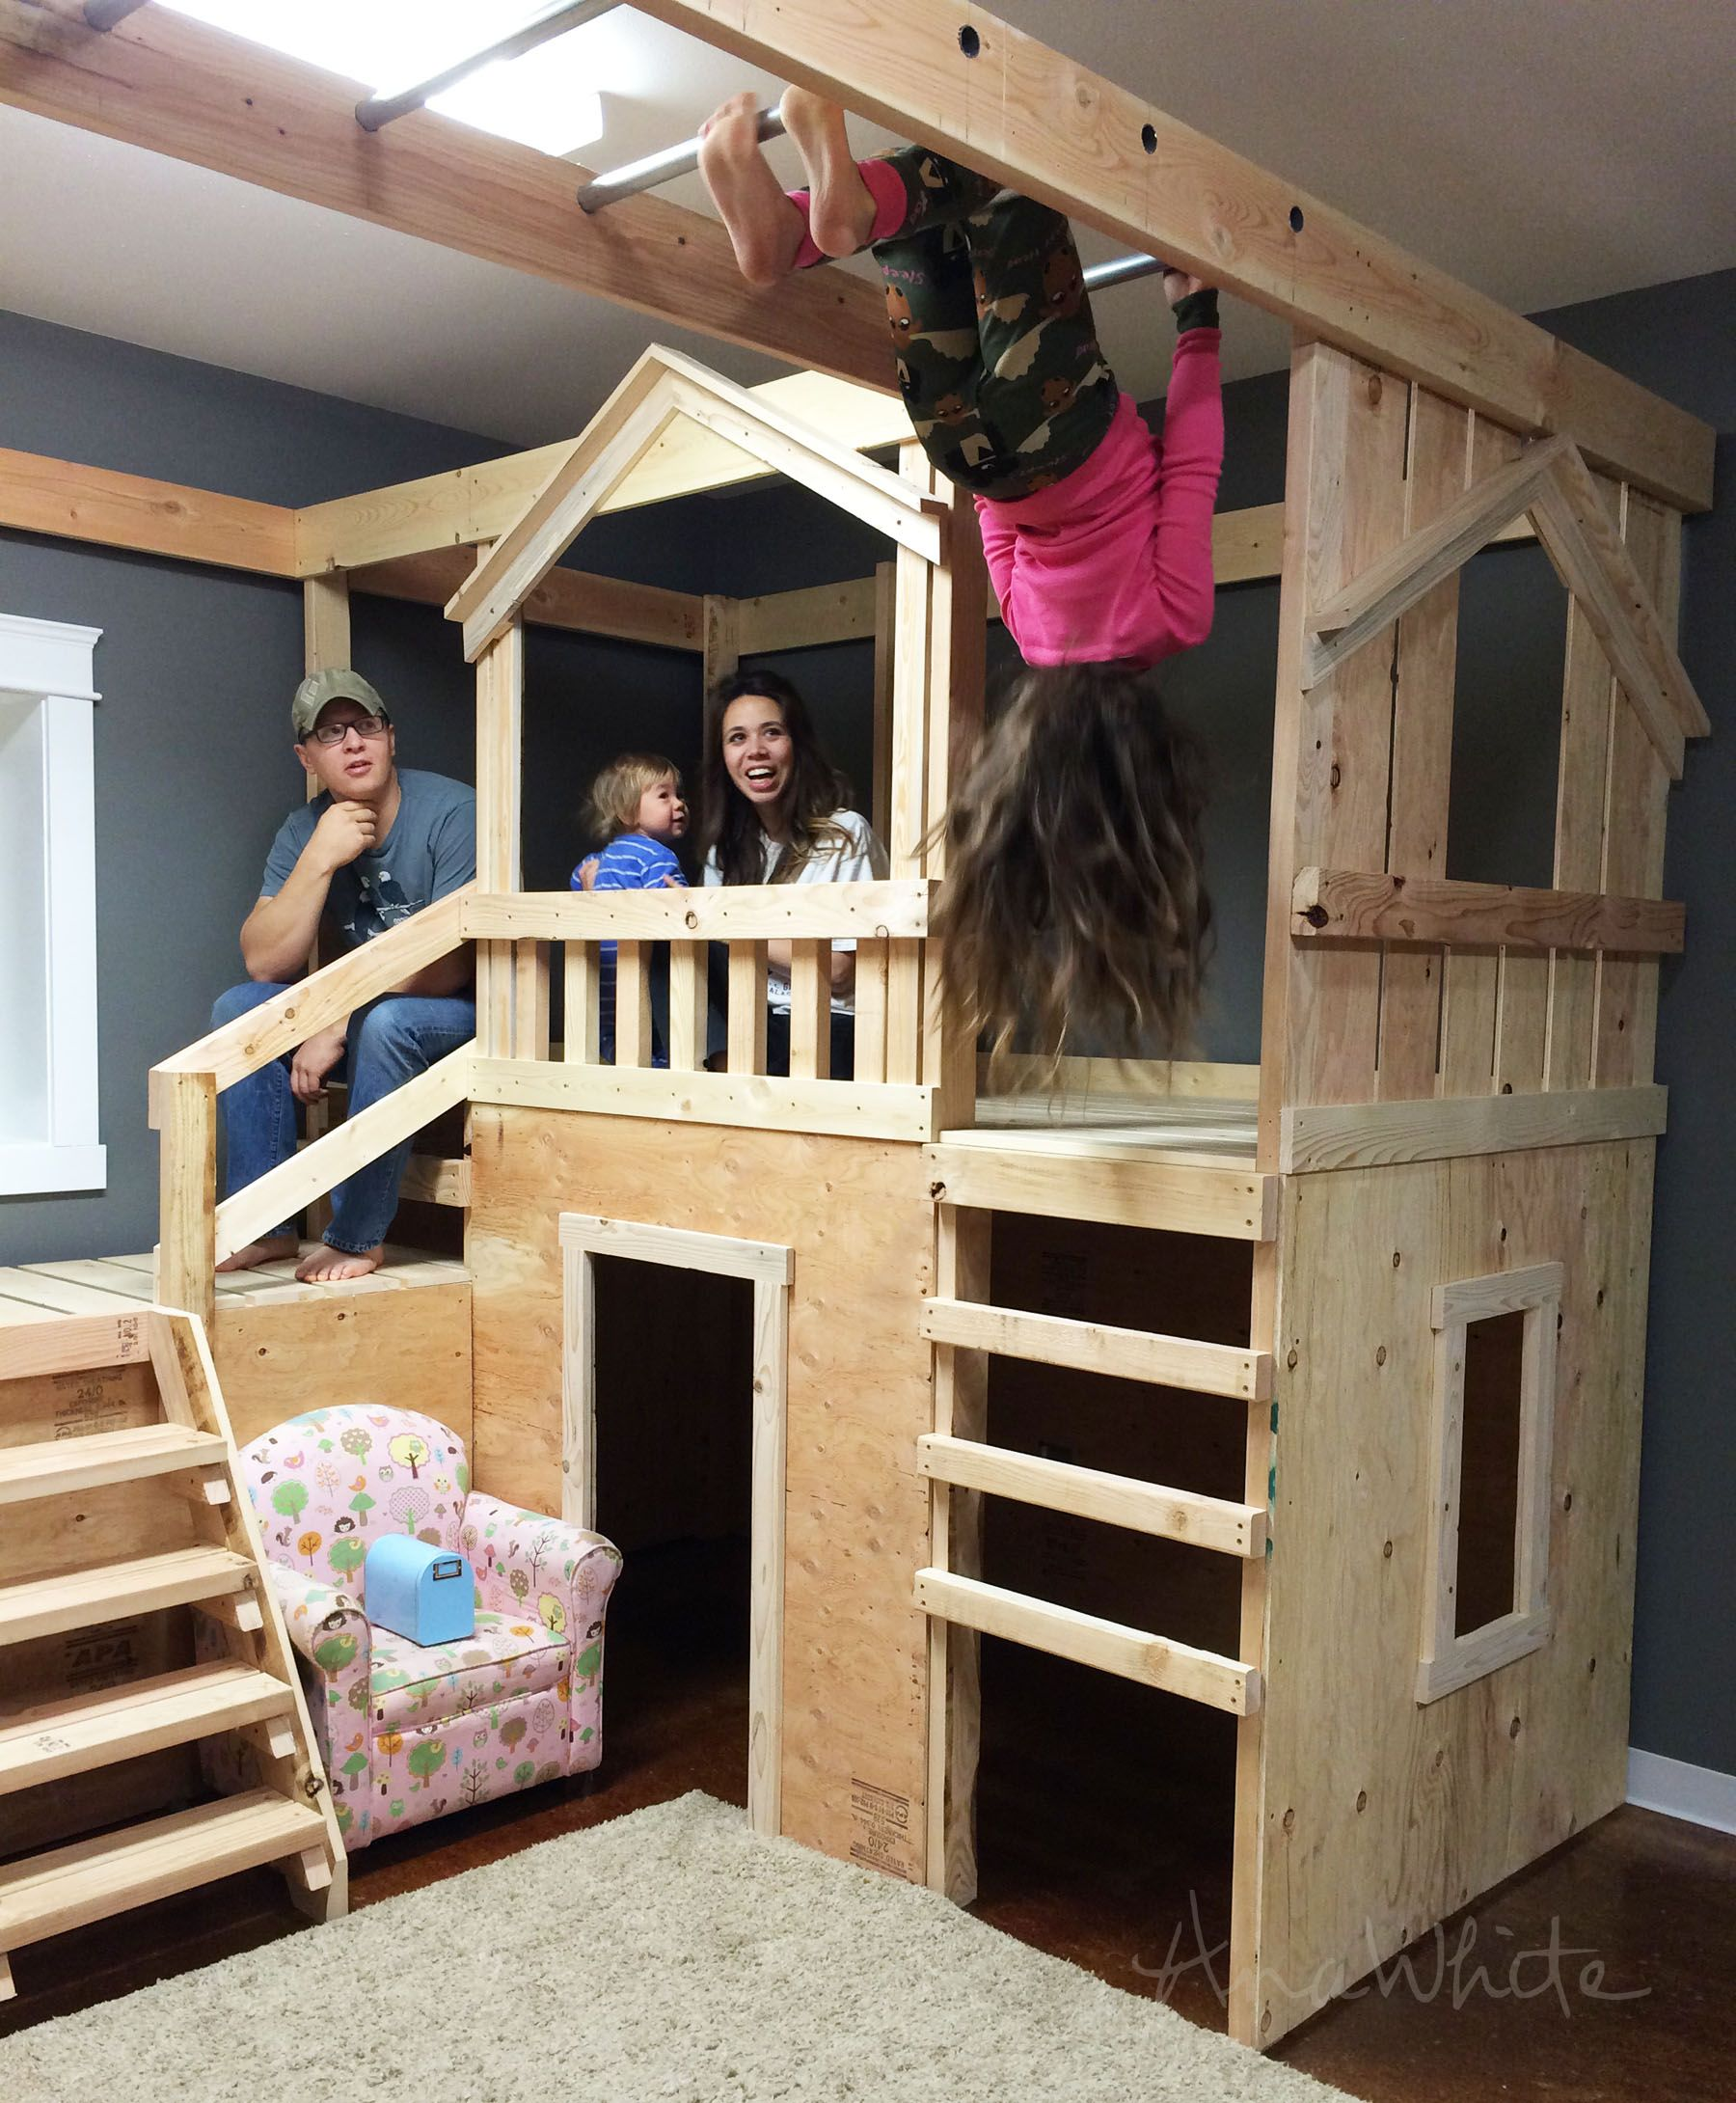 Diy loft bed with slide plans  Ana White  Build a DIY Basement Indoor Playground with Monkey Bars